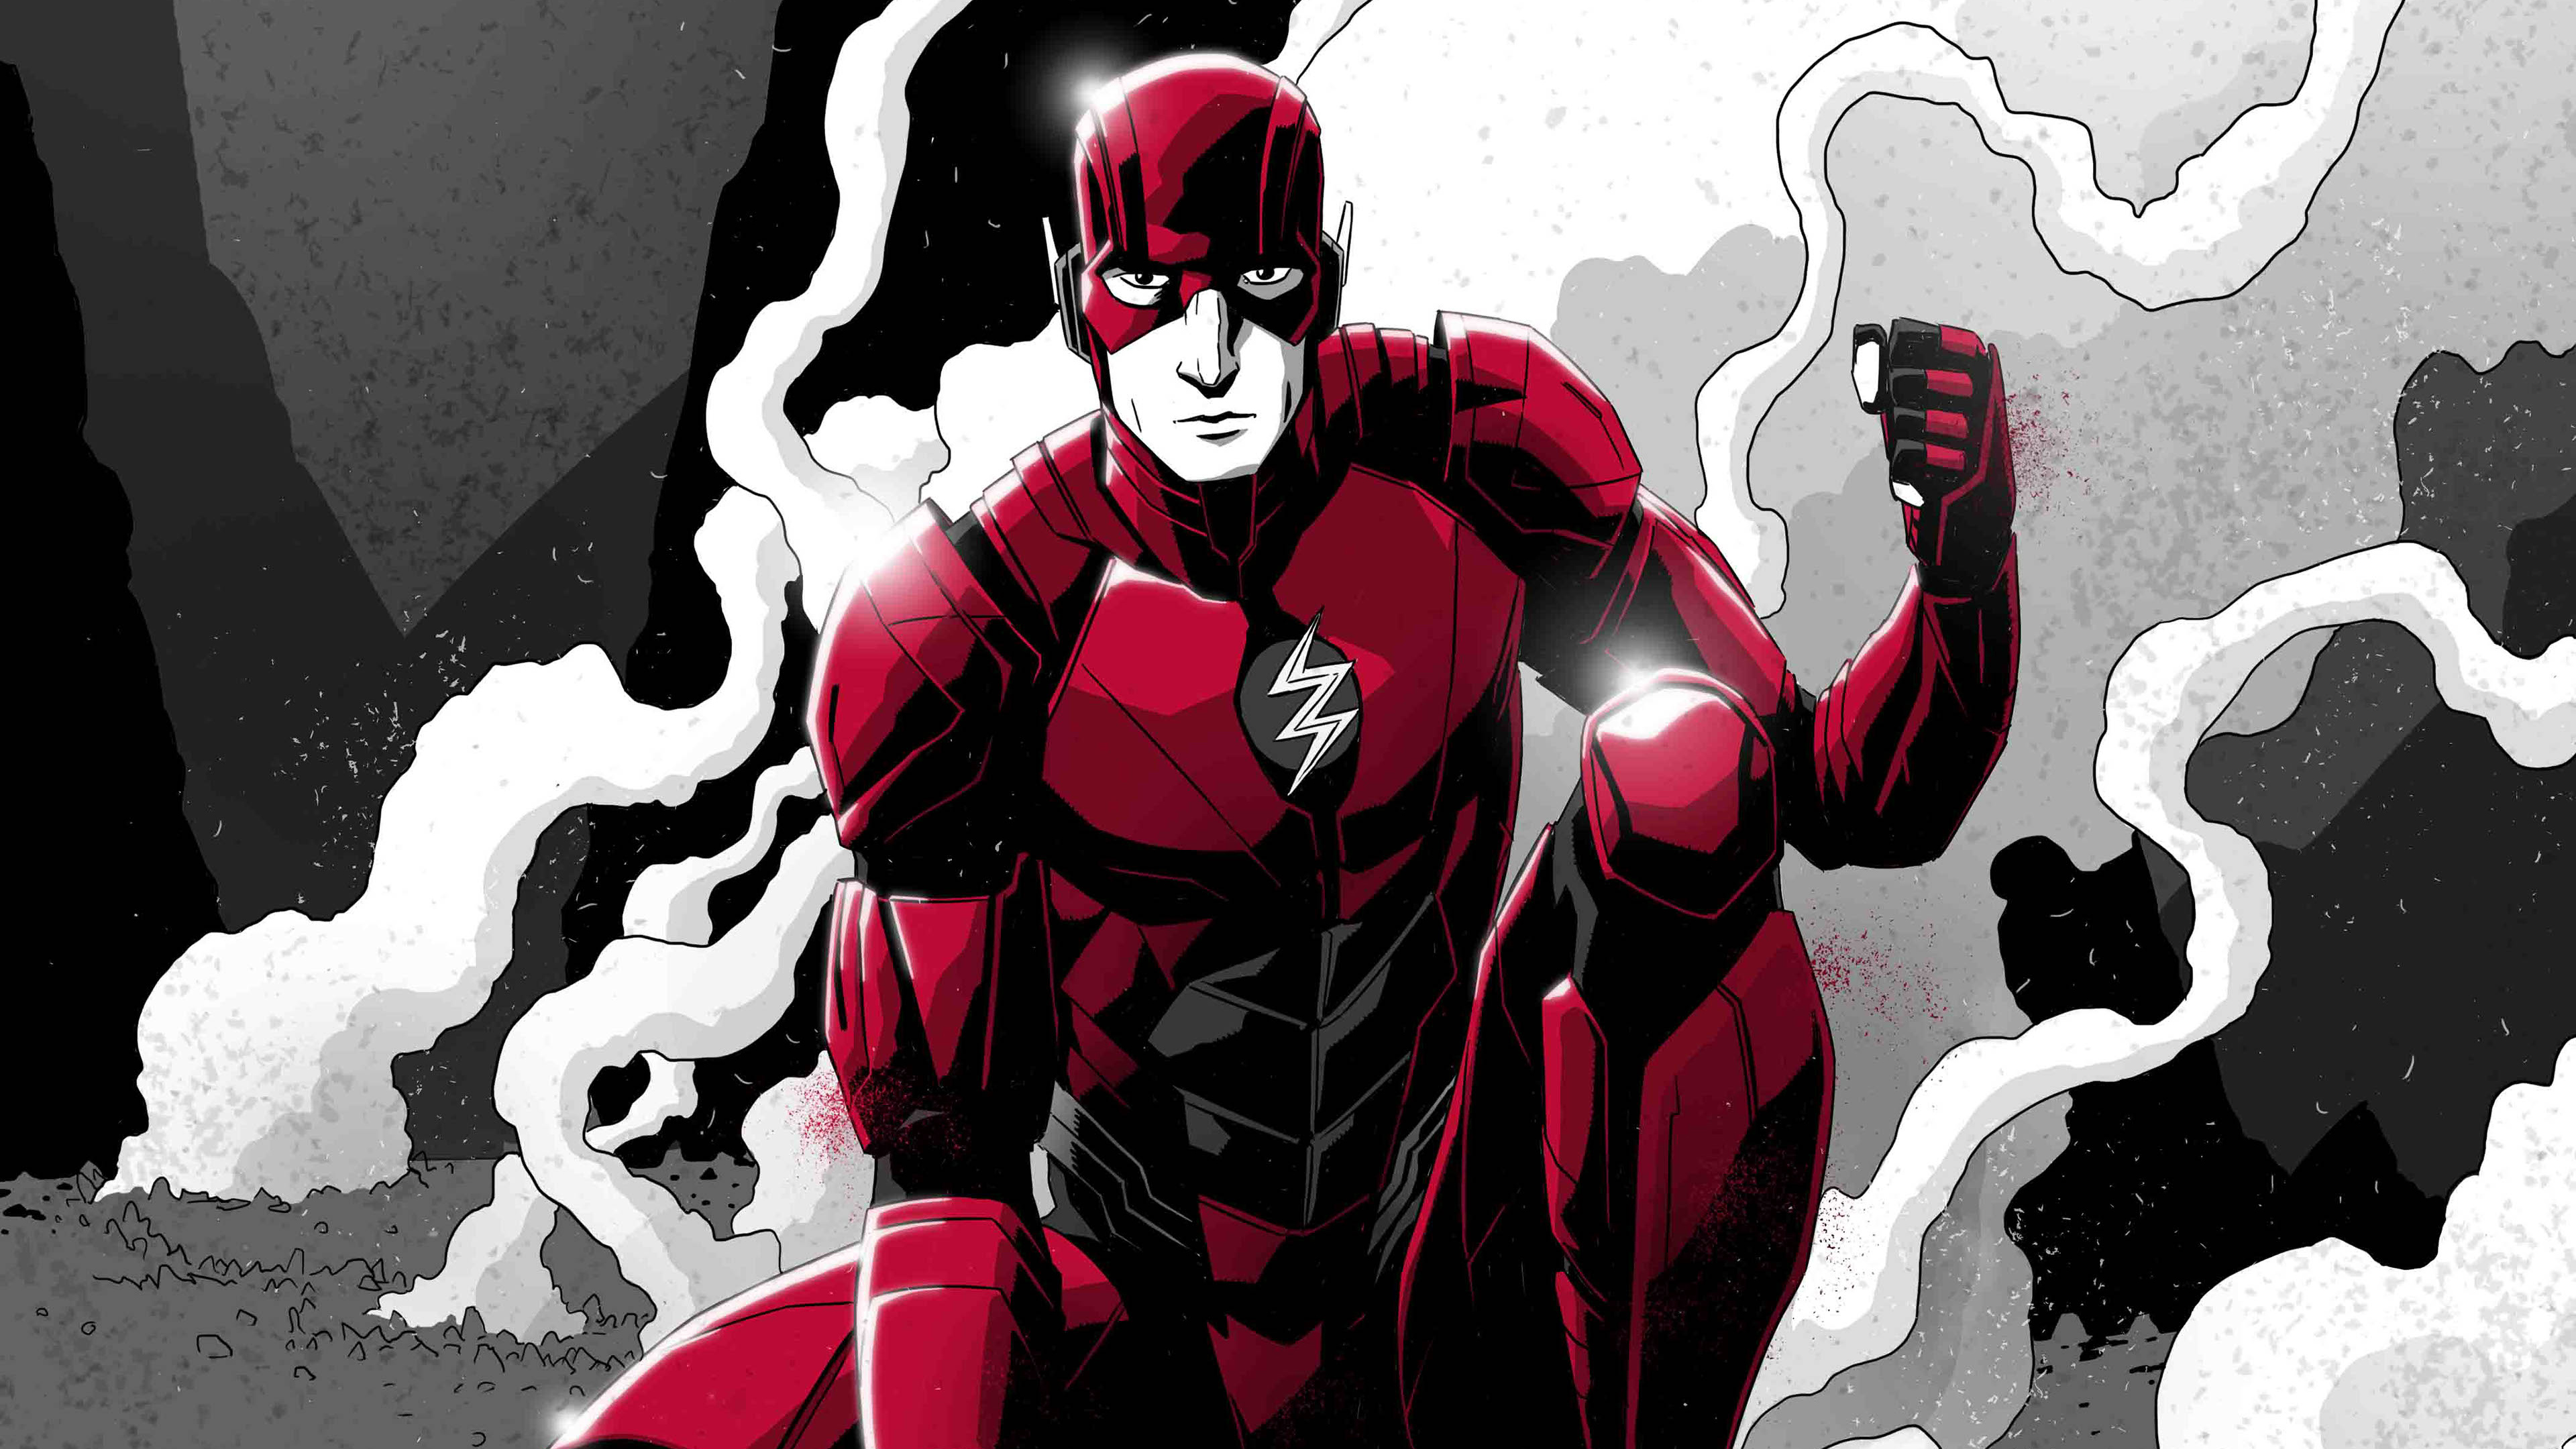 flash monochrome art 4k 1541294385 - Flash Monochrome Art 4k - superheroes wallpapers, monochrome wallpapers, hd-wallpapers, flash wallpapers, digital art wallpapers, behance wallpapers, artwork wallpapers, 4k-wallpapers